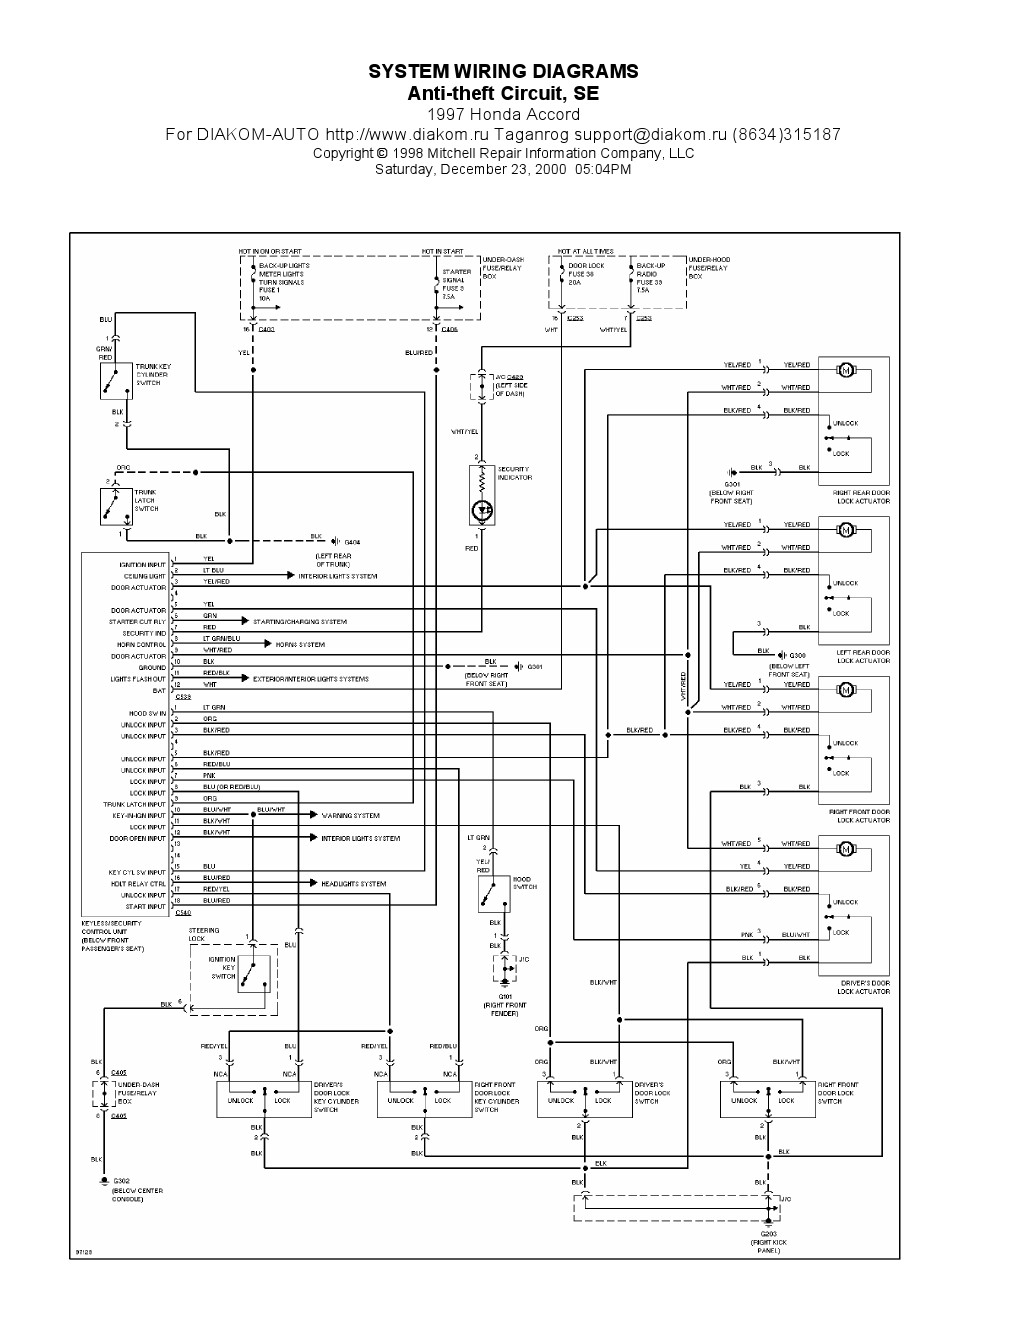 1994 Honda O2 Sensor Wiring Schematic Diagrams Lexus Is300 Diagram 1997 Accord Residential Electrical Subaru Color Codes